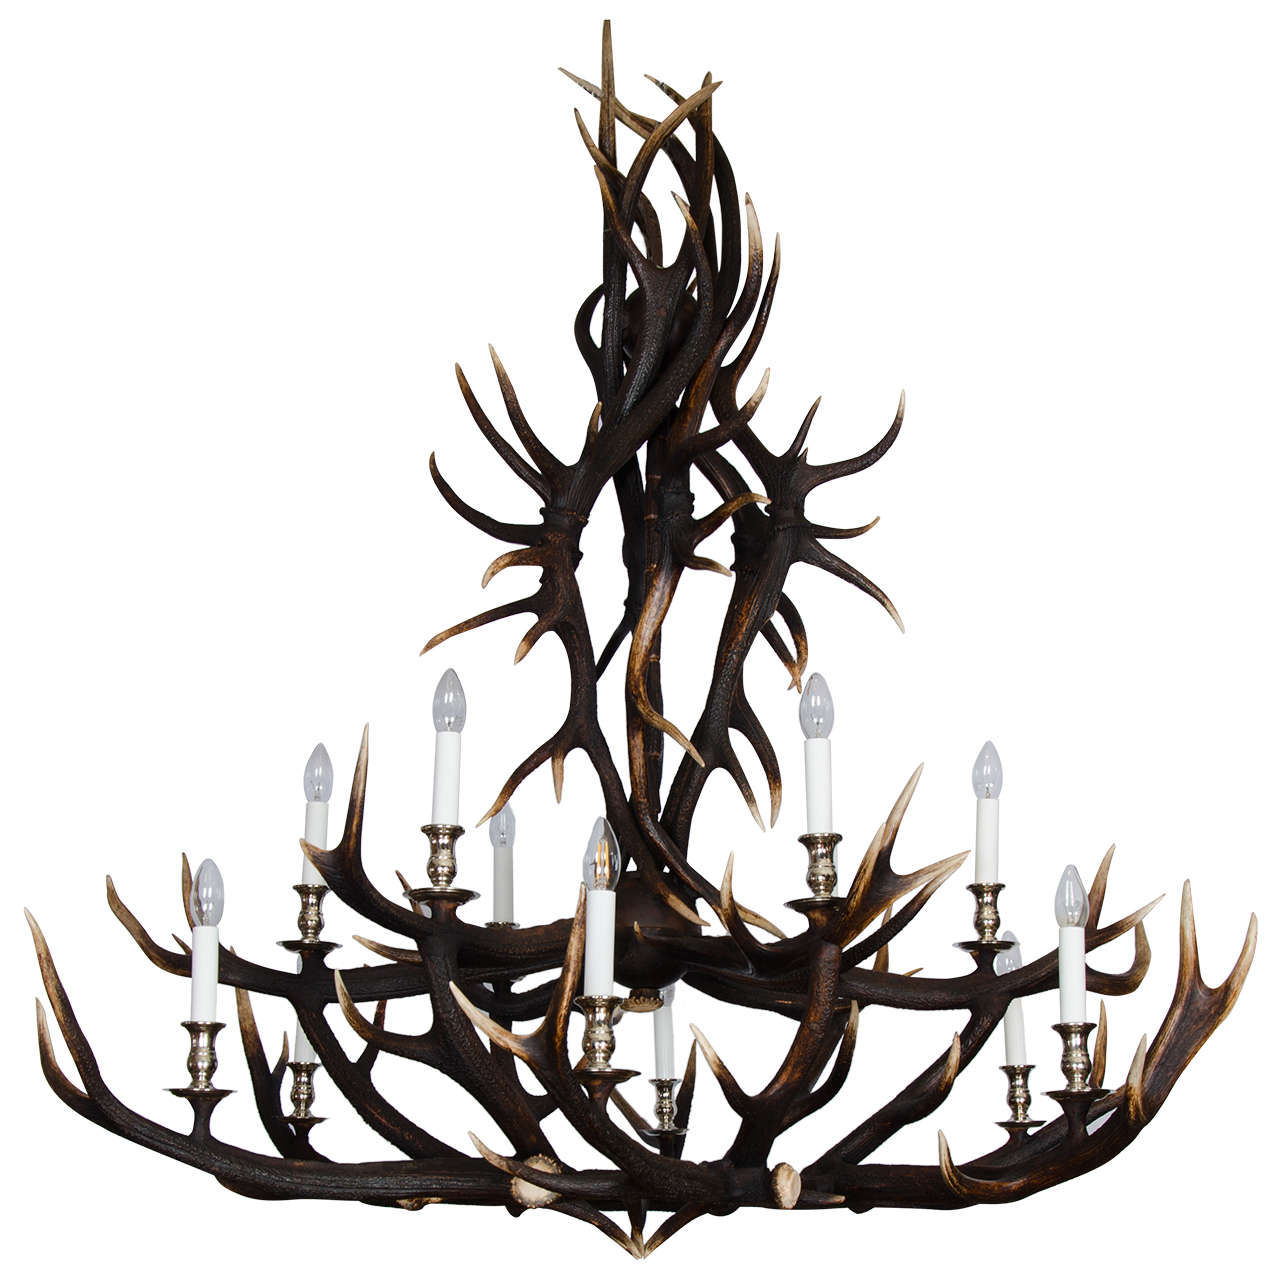 Custom-Made Two-Tier Antler Chandelier